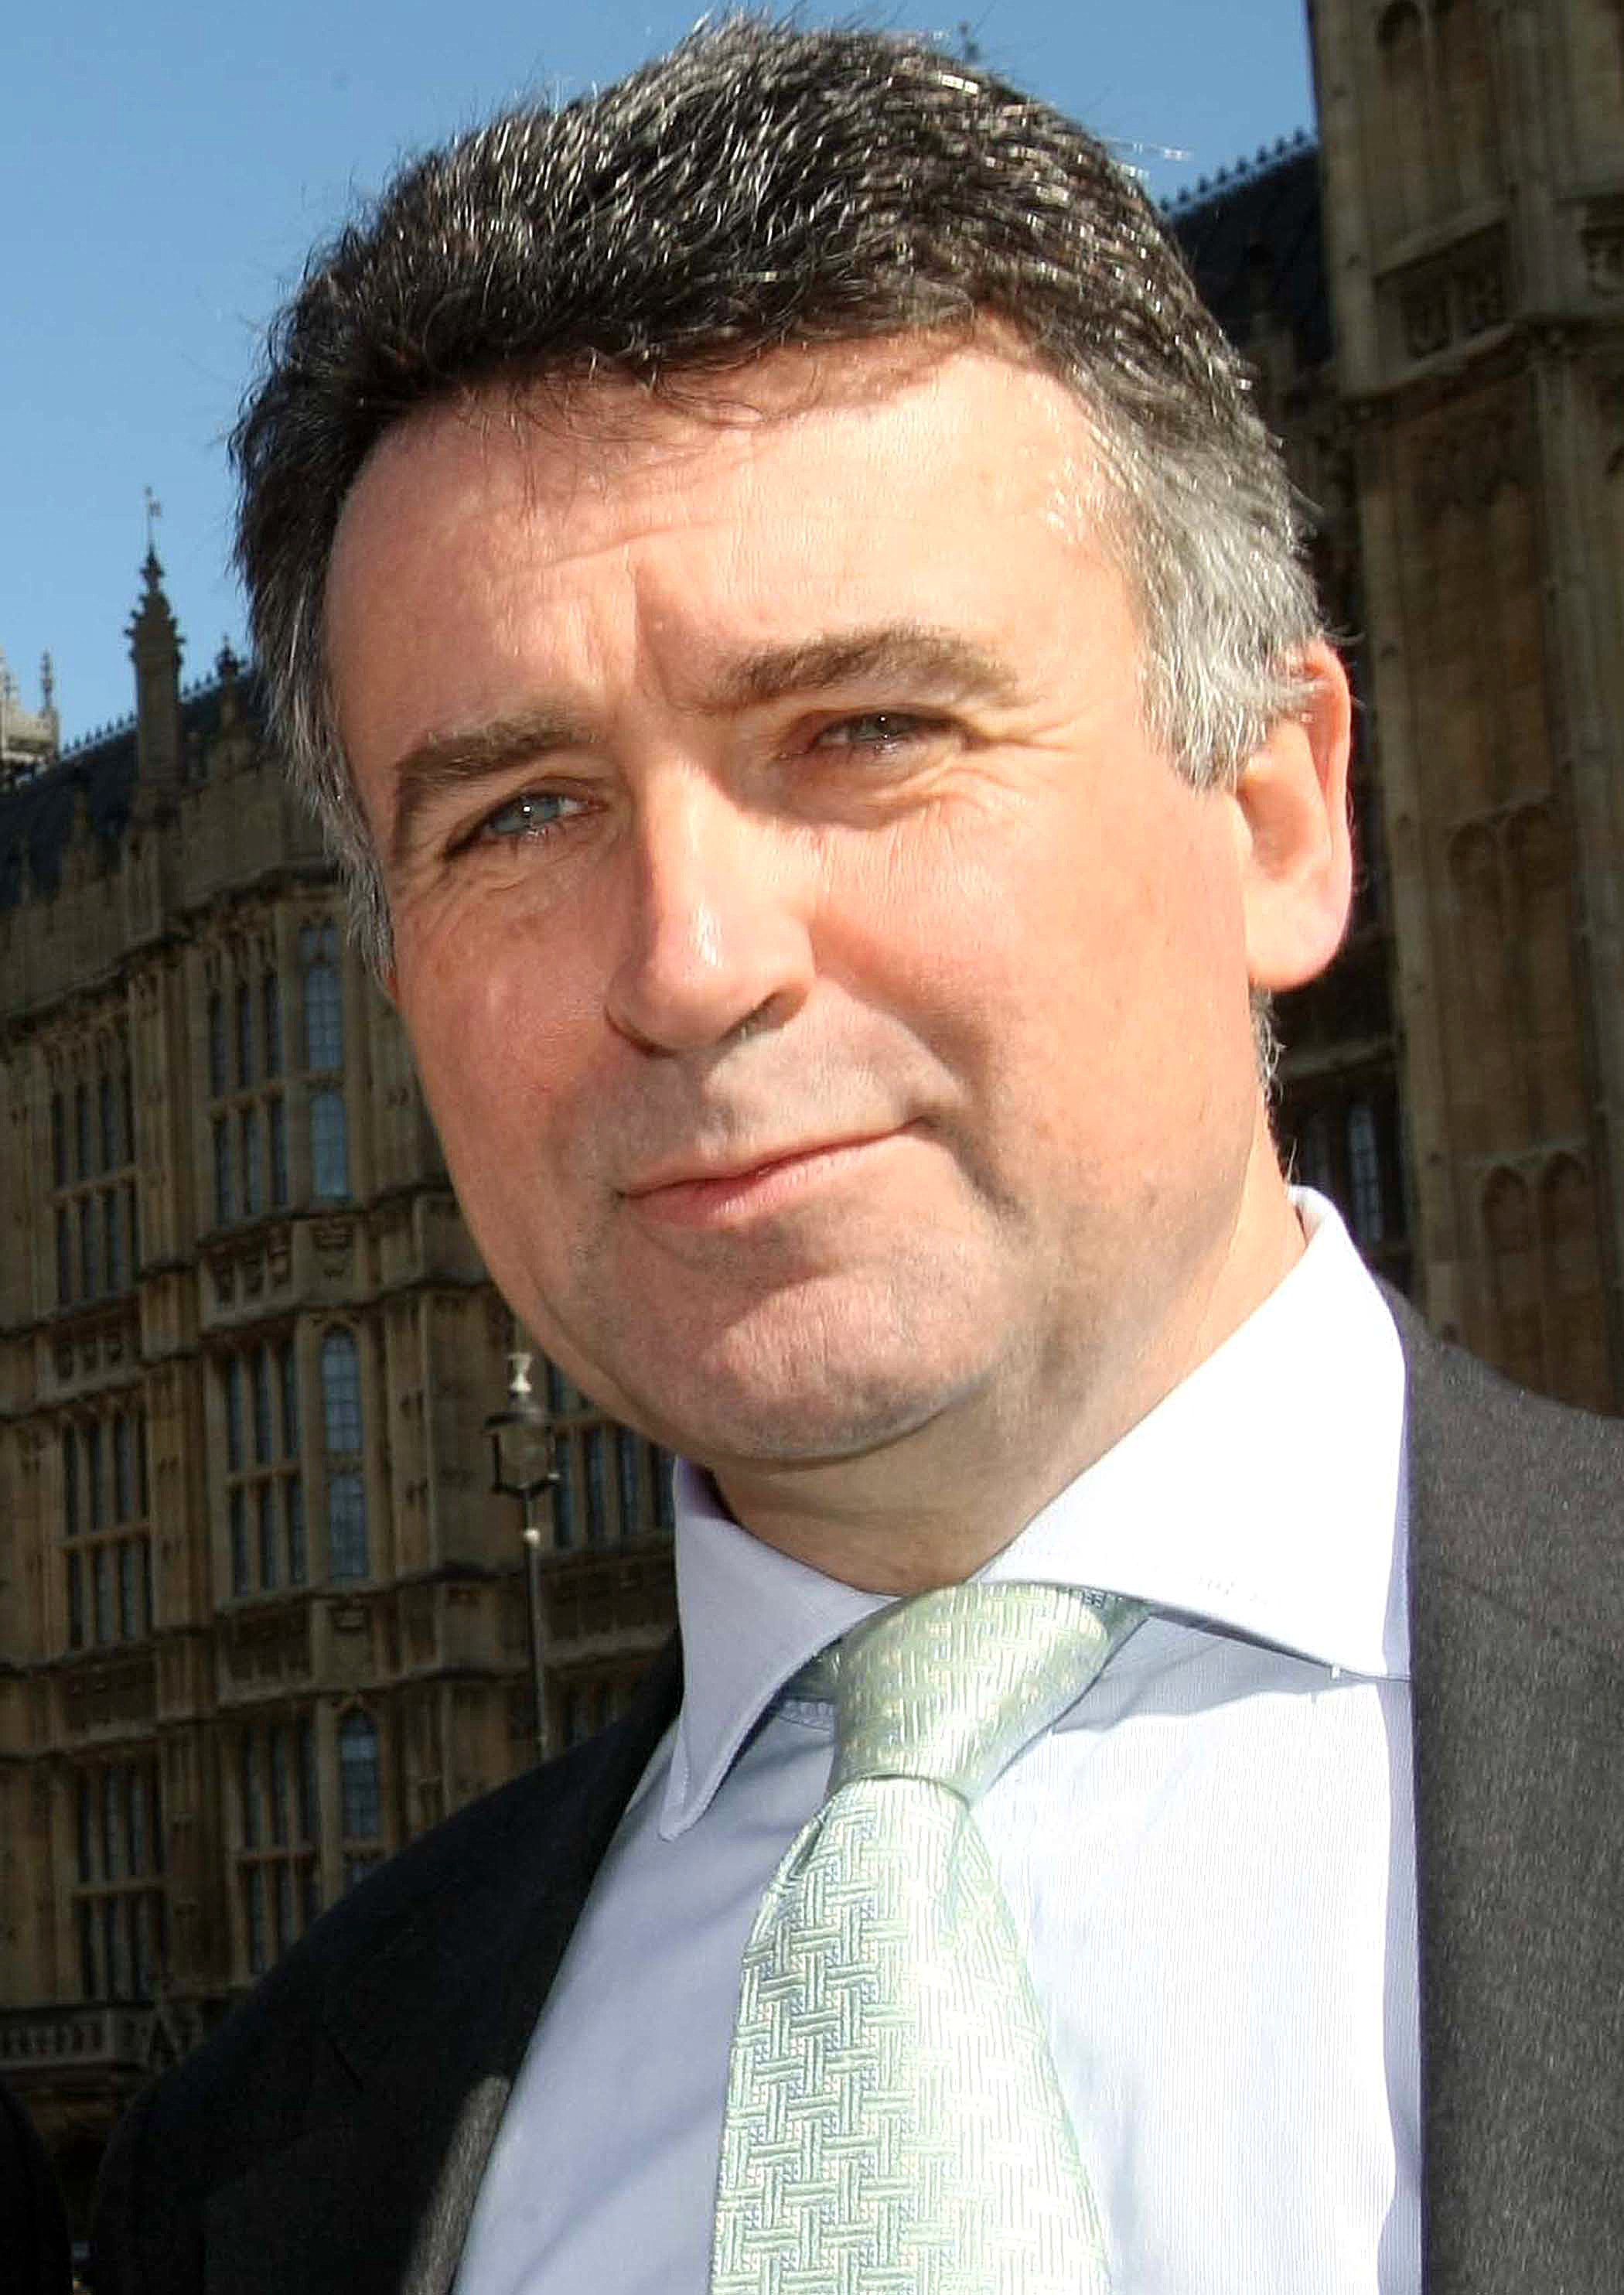 MP quizzes NHS over surgery funding cuts